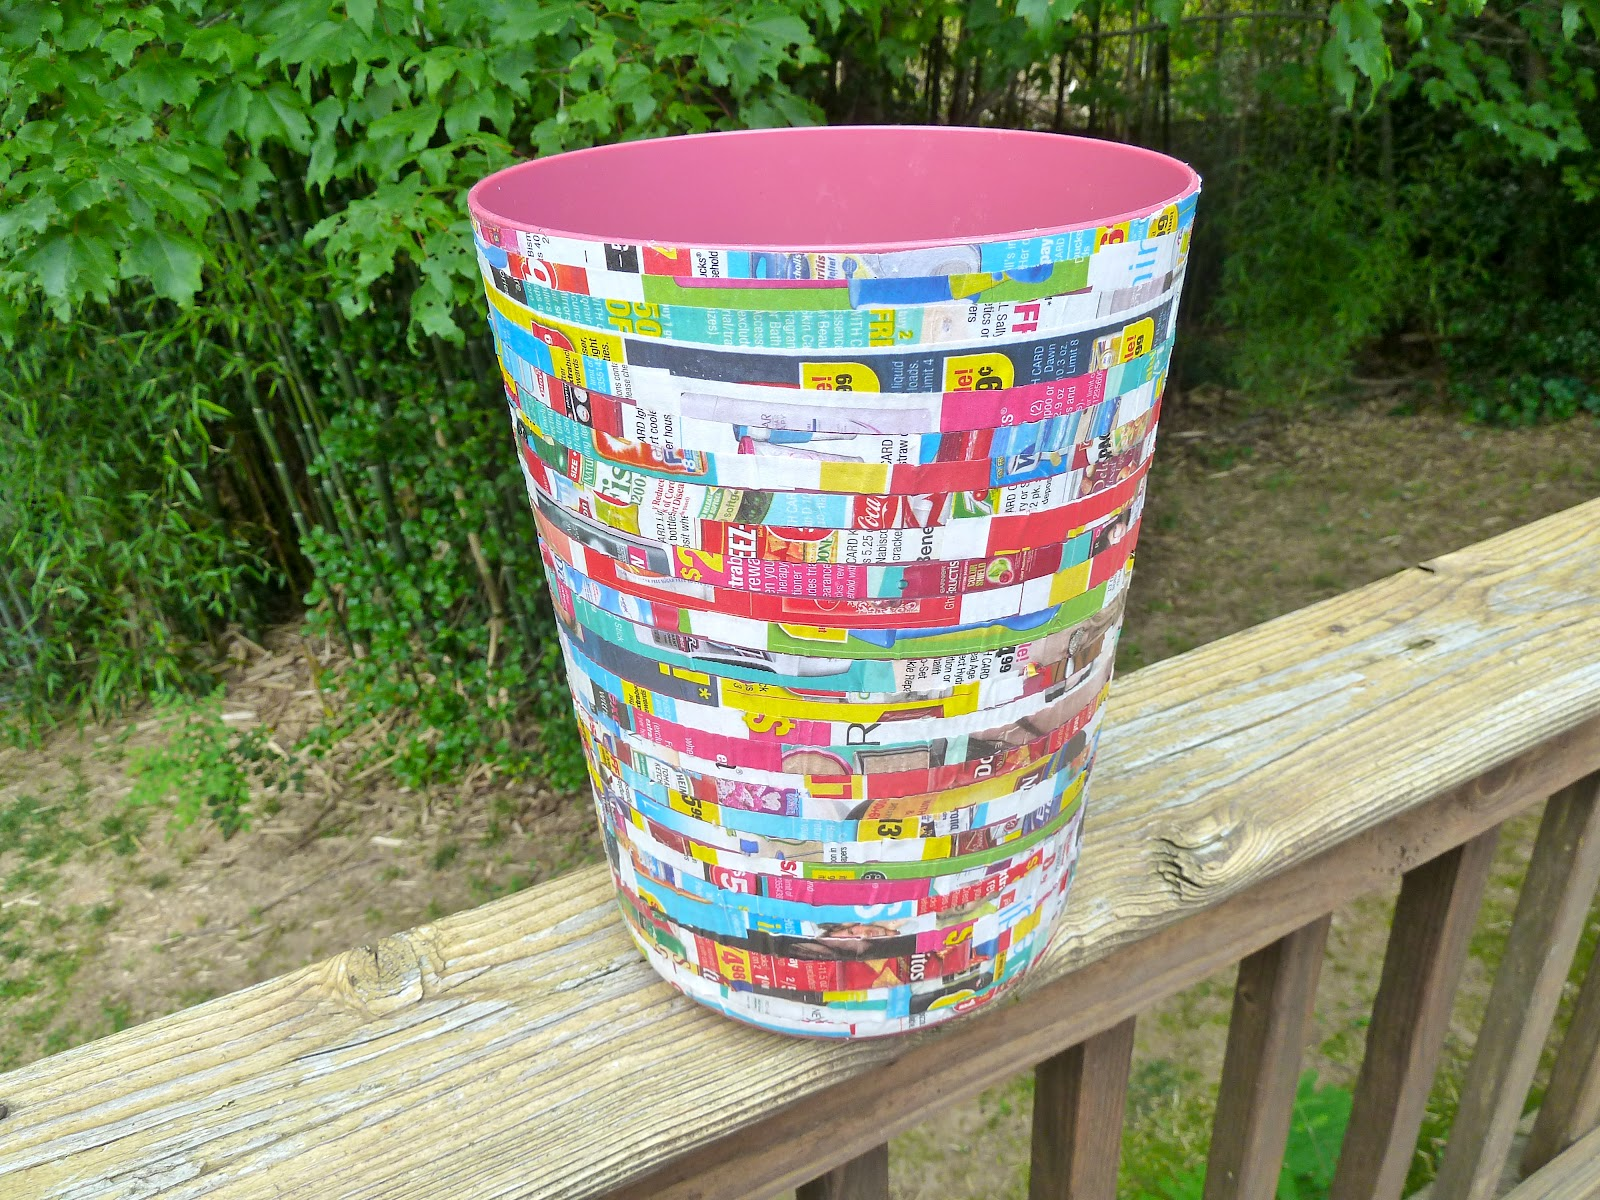 Make it easy crafts recycled waste wastebasket for Recycled crafts to sell